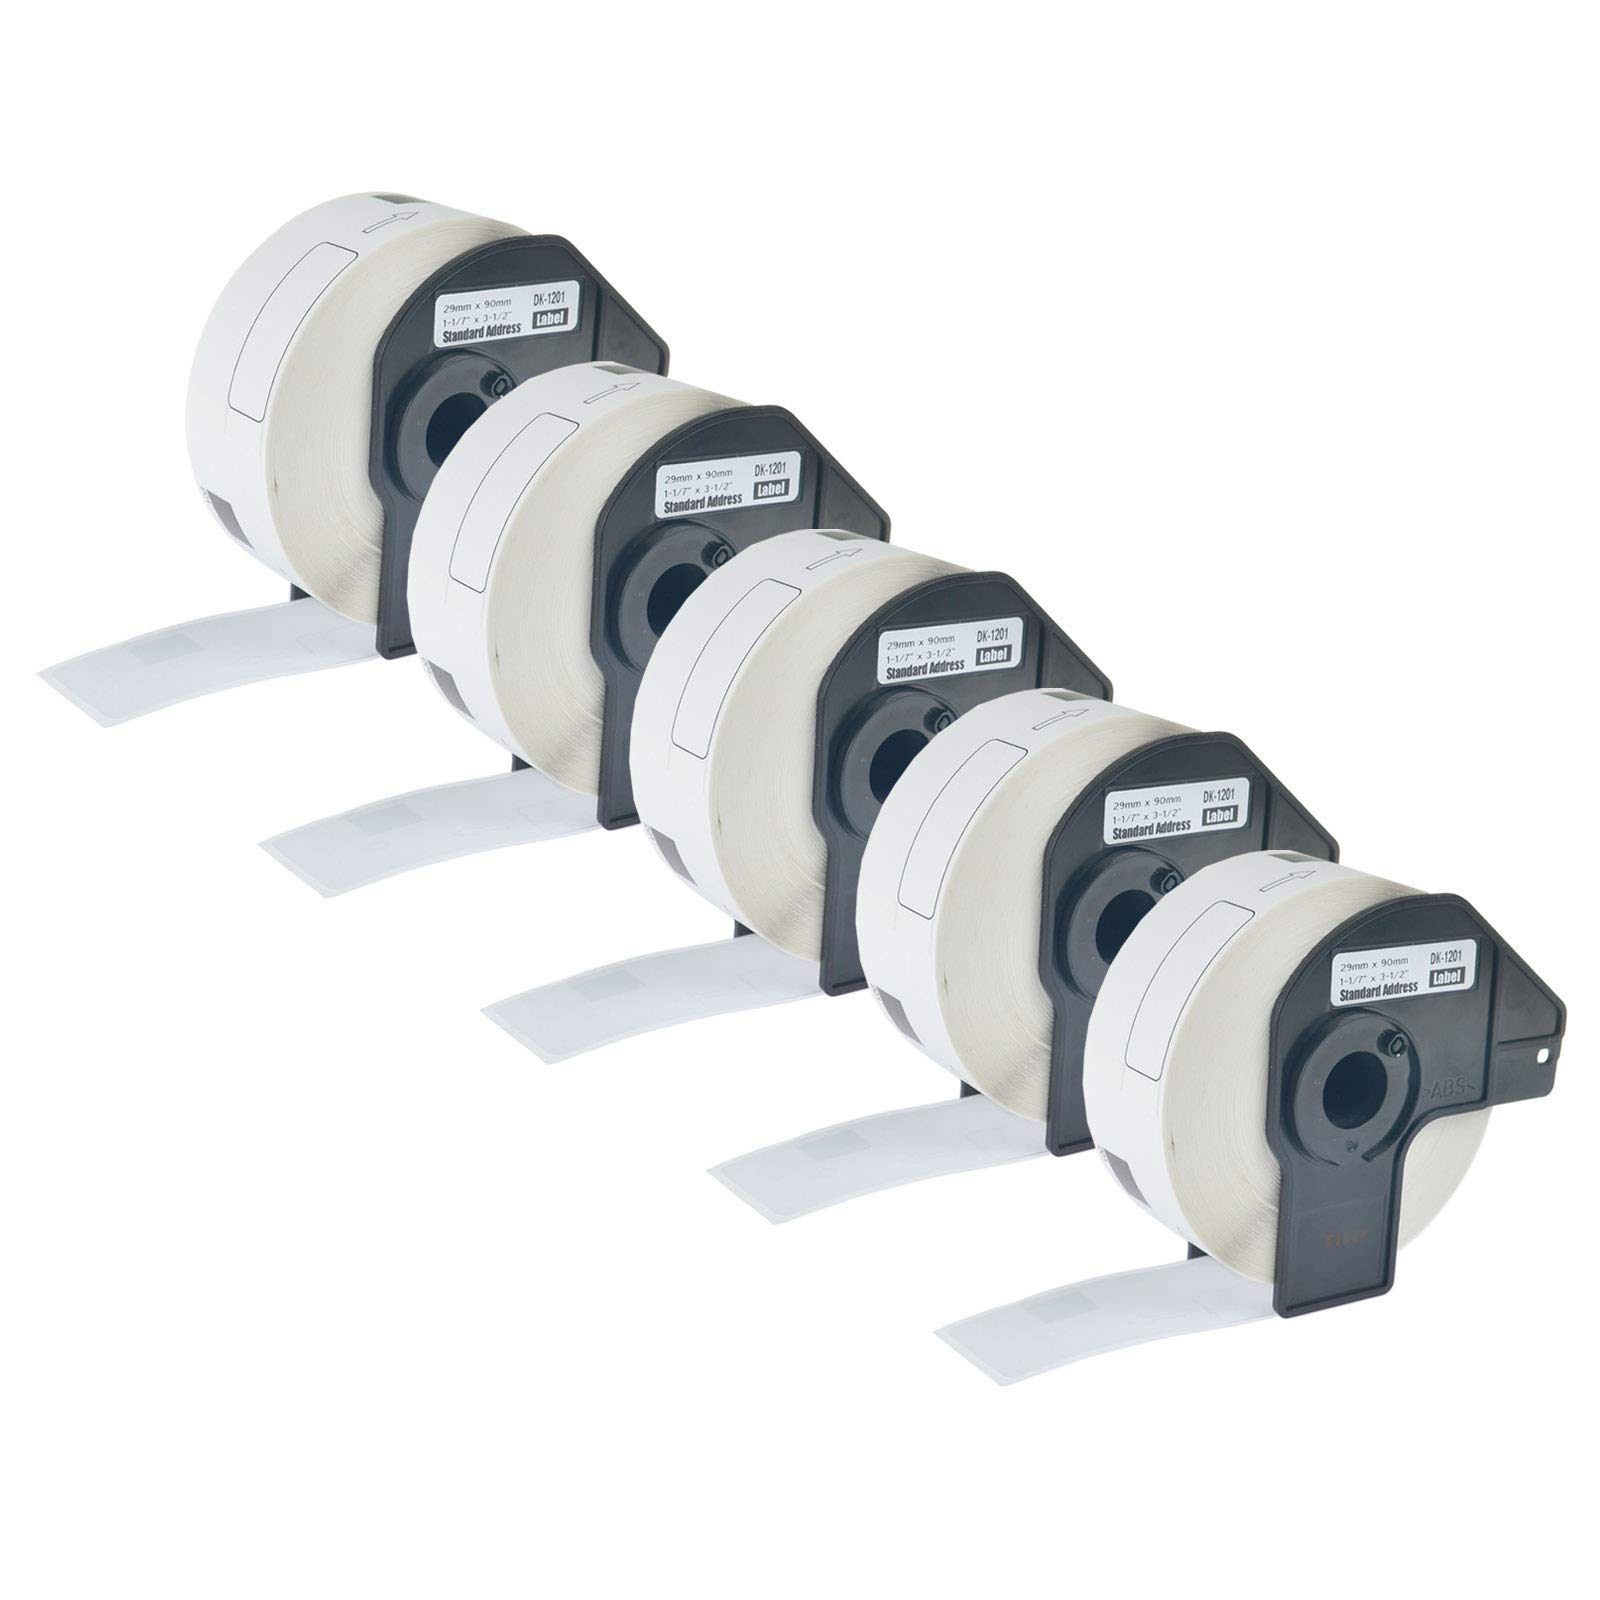 KCYMTONER 5 Roll of Compatible Brother DK-1201 DK1201 White Label Continuous Paper 29mm x 90mm (1-1/7'' 3-1/2'') for P-Touch Q Touch QL-500 QL-570VM QL-710W QL-1050N QL-1060N Series Printer